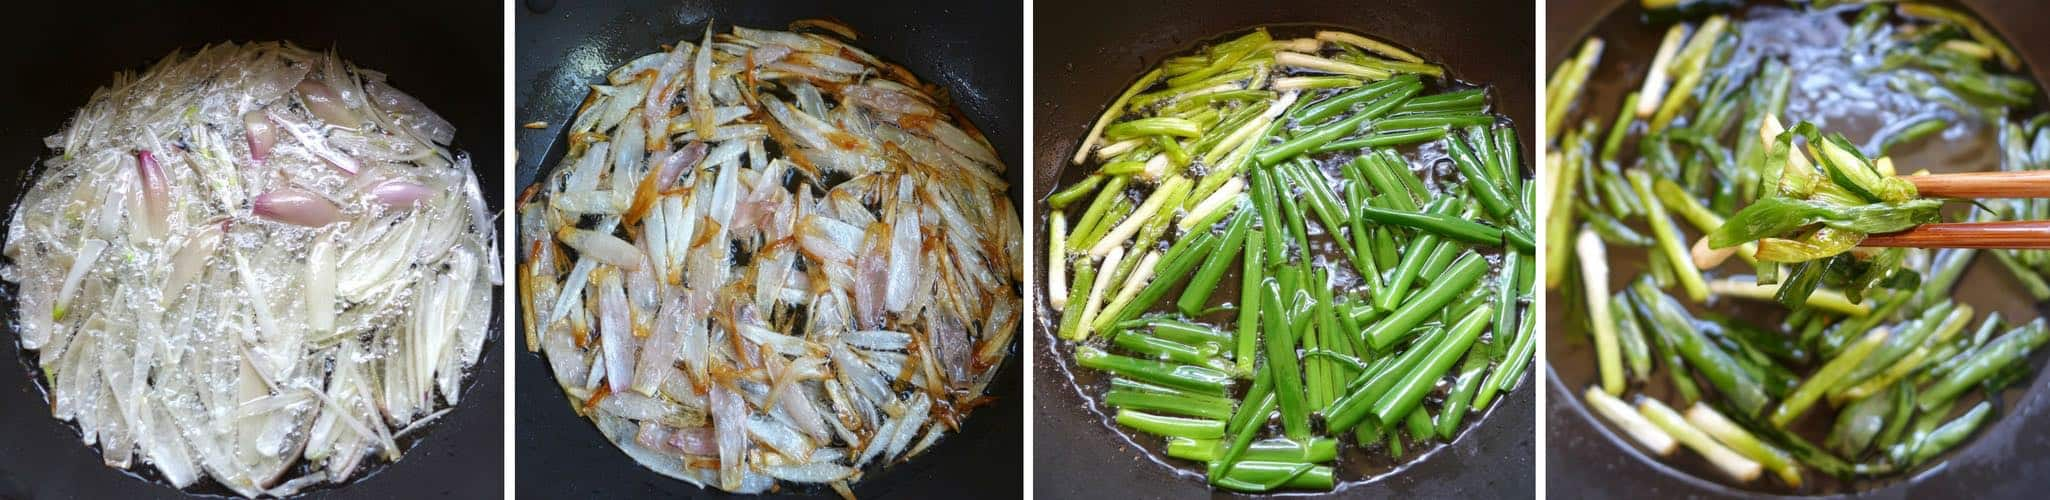 A step by step recipe guiding you to make Chinese spring onion oil without fail. You will also learn how to use this versatile condiments in seven ways.